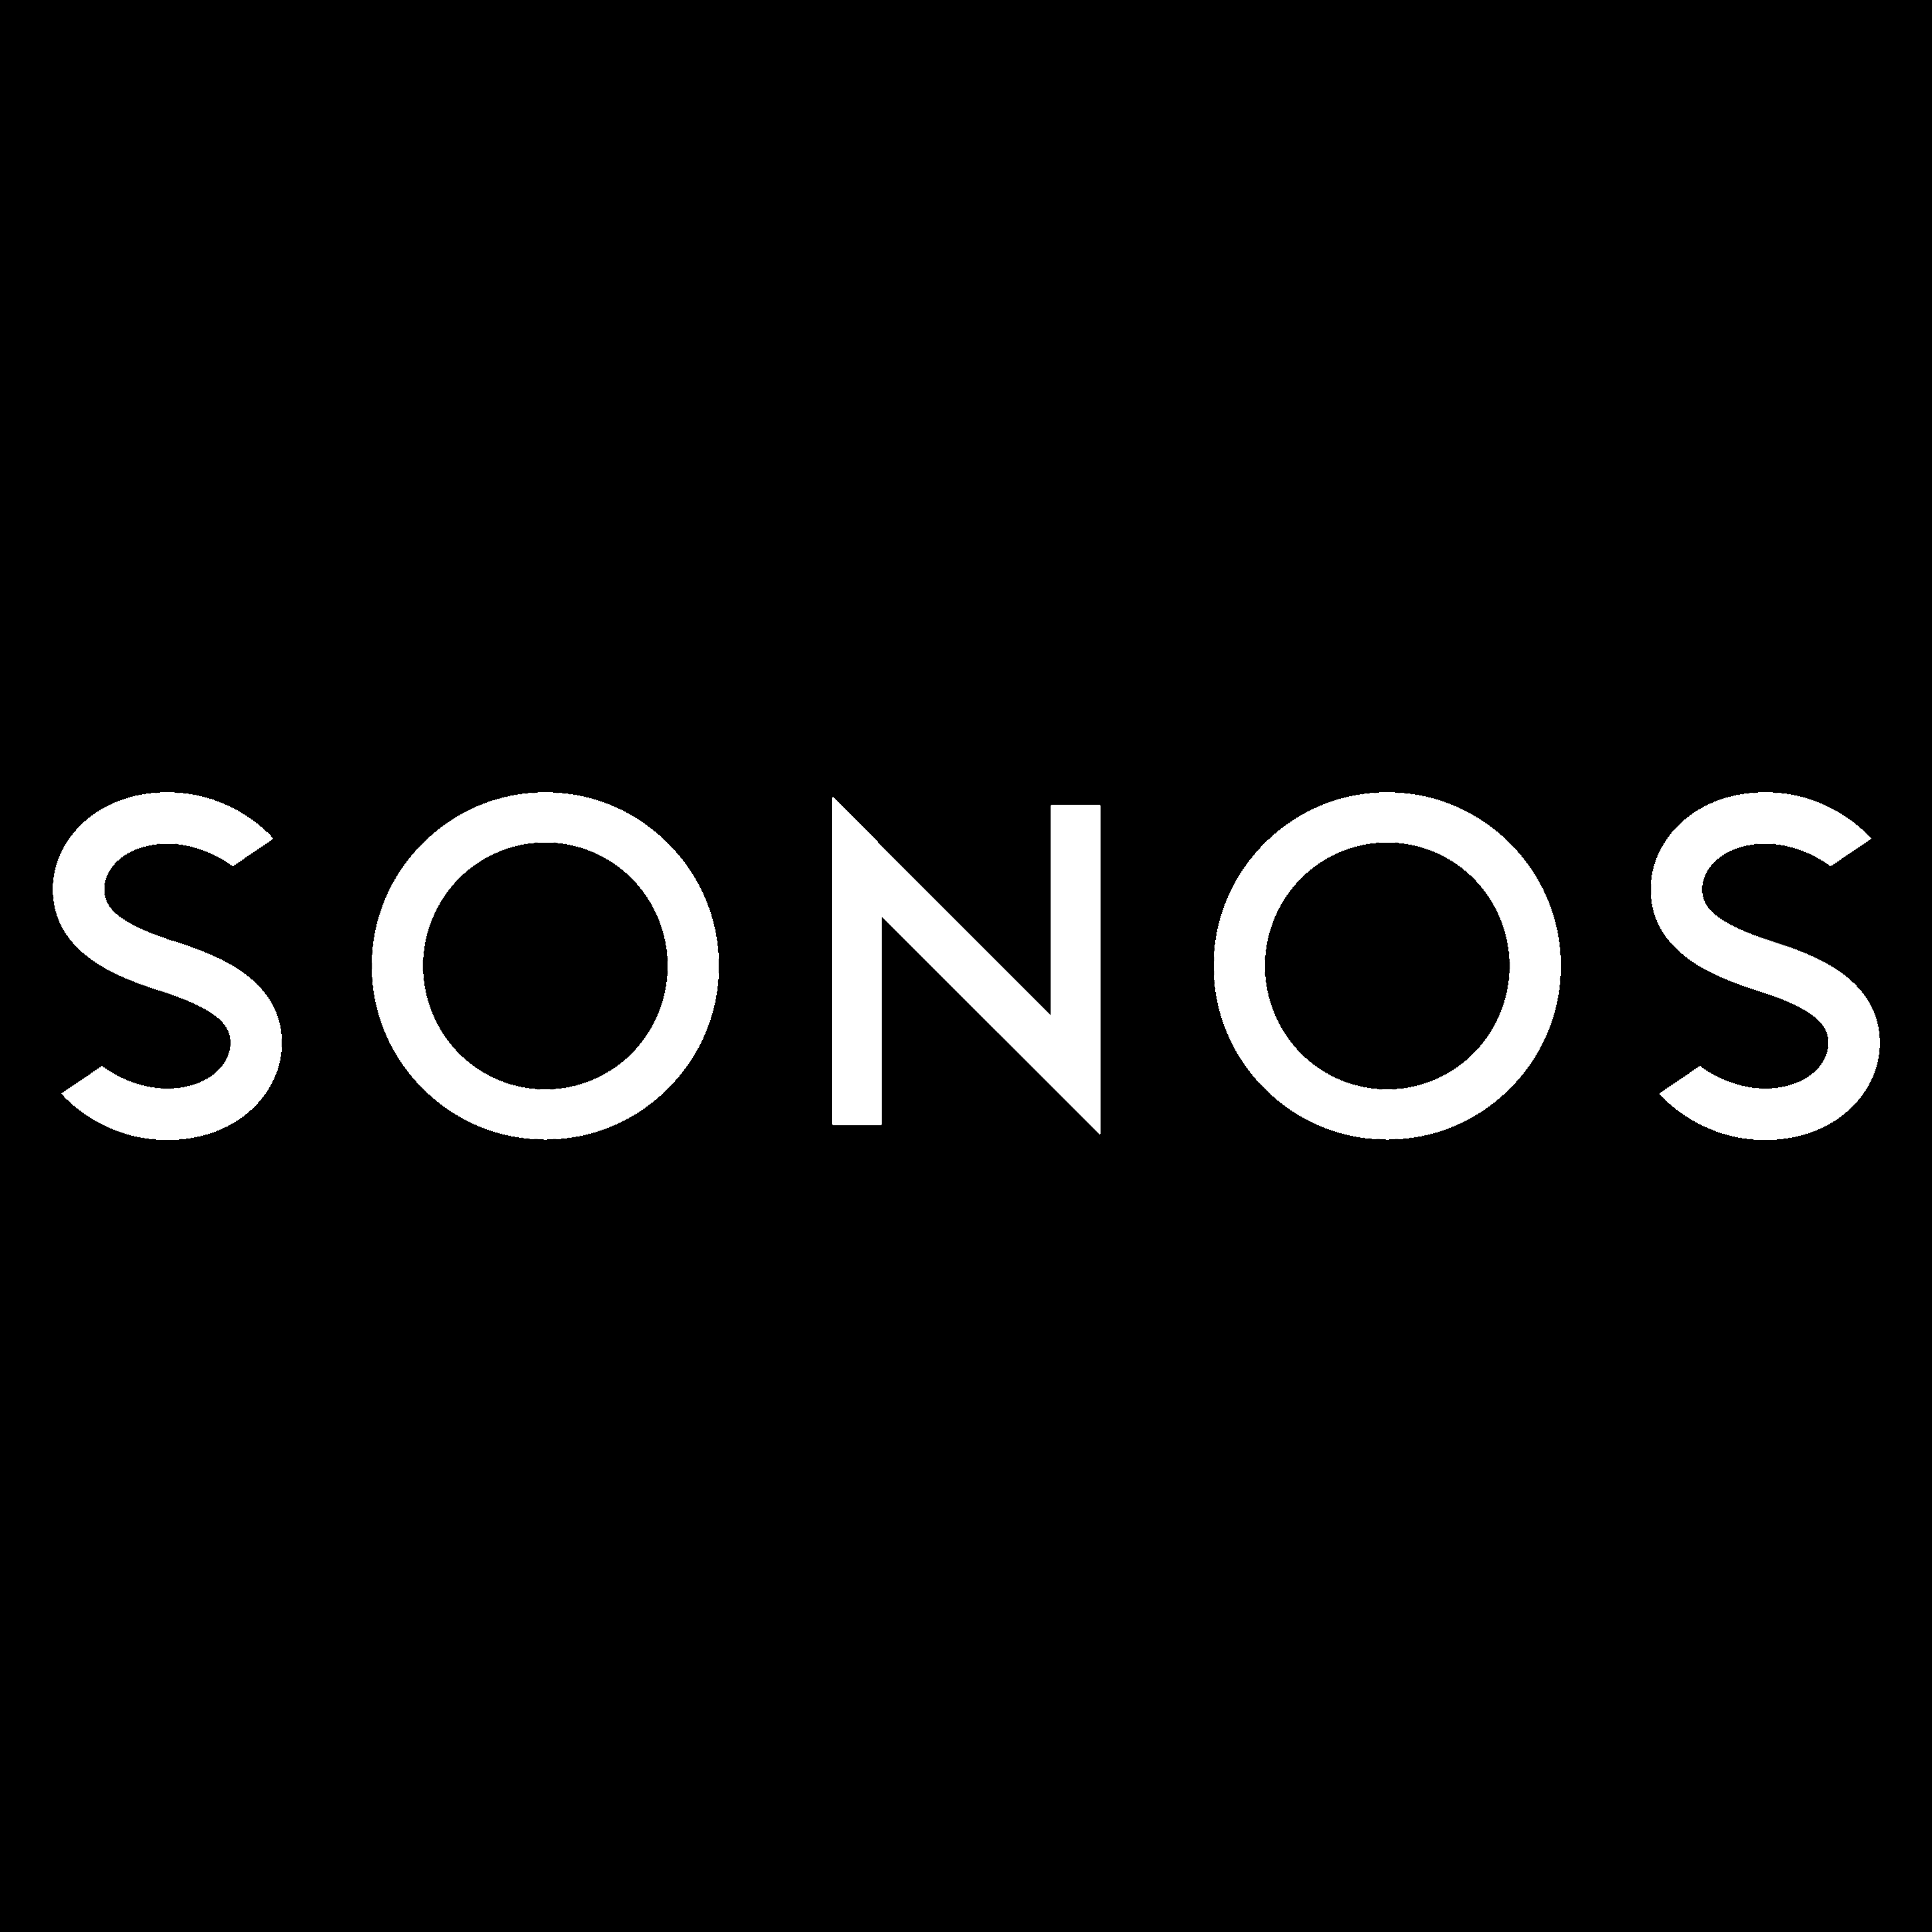 Holiday Deals are back  at Sonos.com. Save $40 on the Sonos one or Sonos one SL.